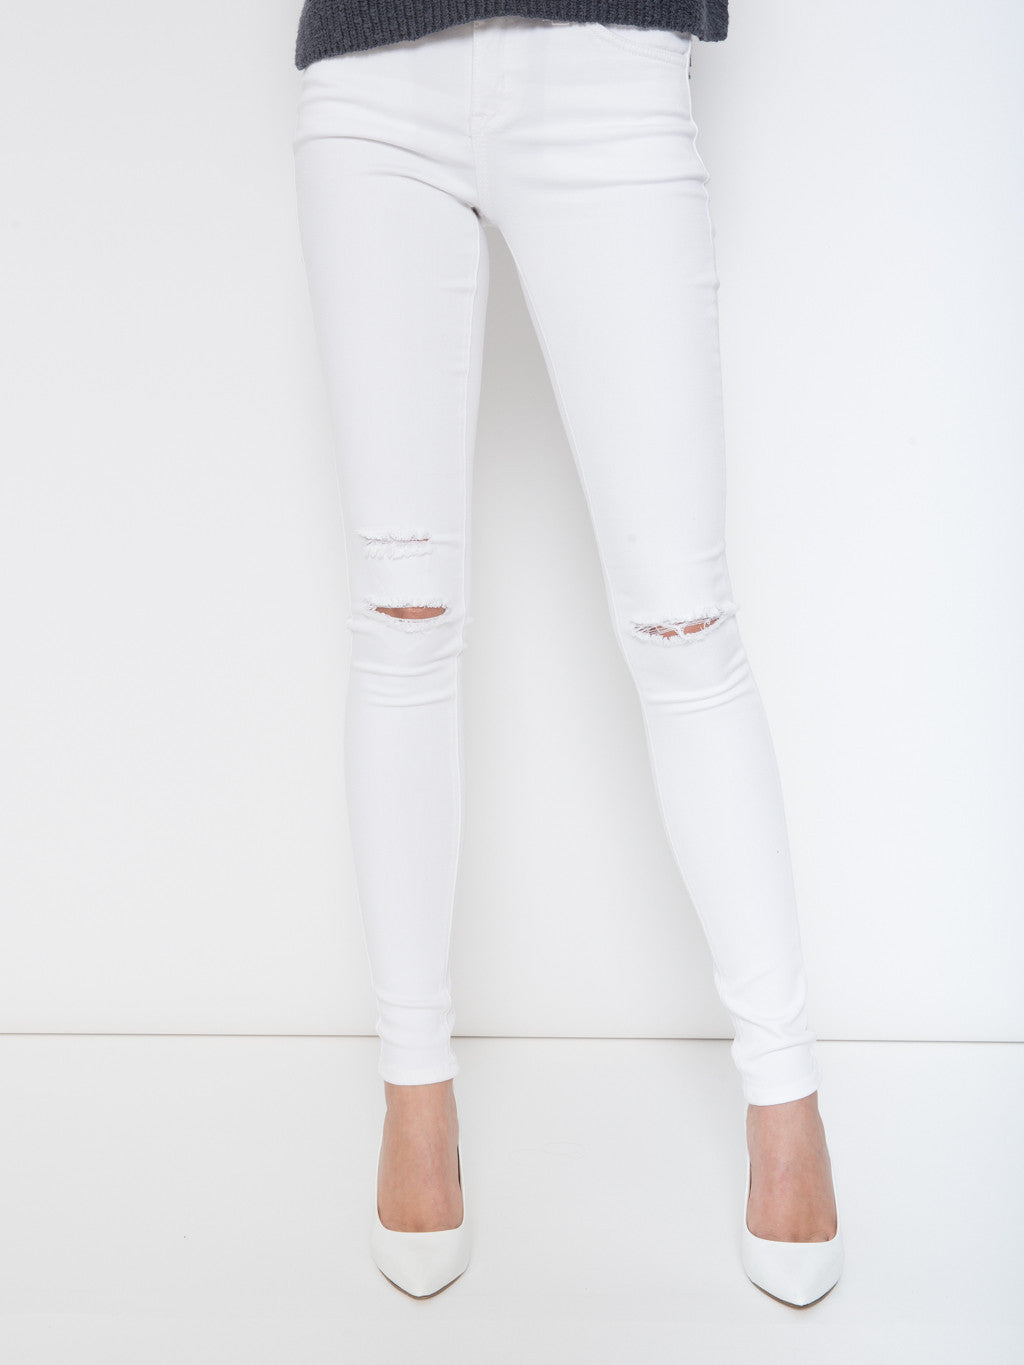 Kancan distressed white denim skinny jeans featuring a single button fastening, zip fly, standard belt loop, two front pockets, and two rear pockets. Asymmetrical knee distress keeps eyes away from any problem areas and directs attention to your lean legs and pretty shoes.